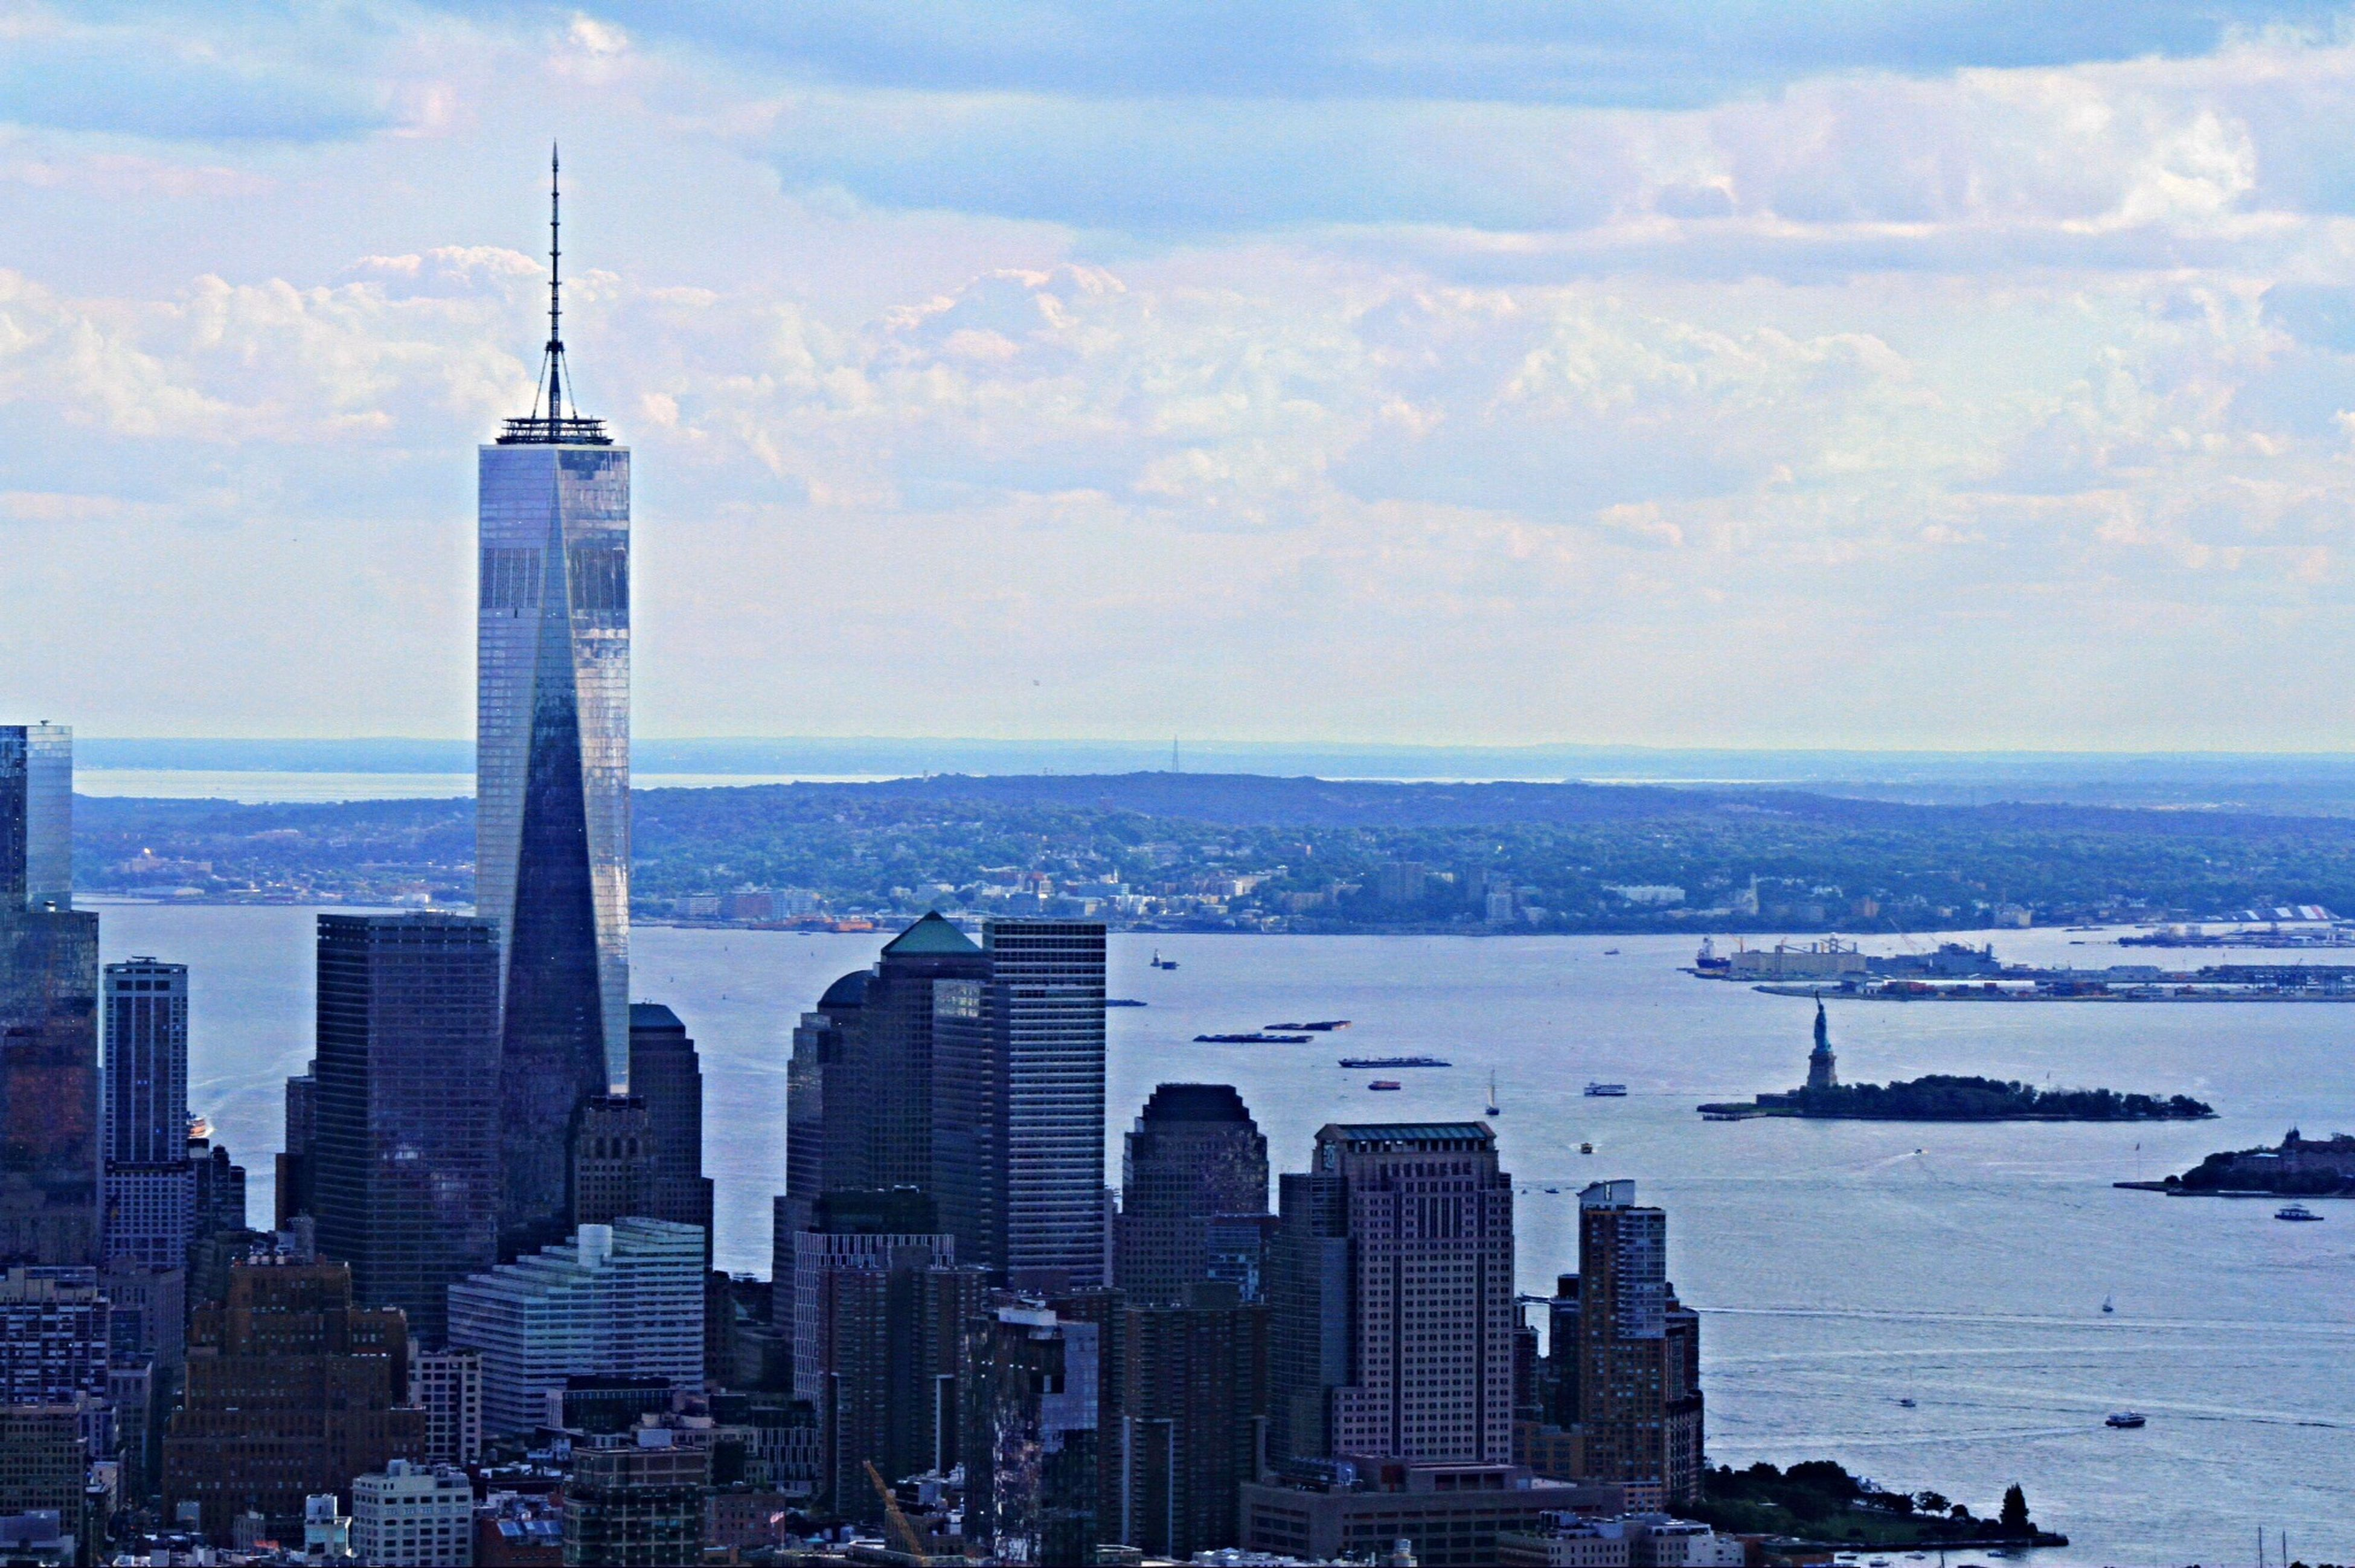 building exterior, architecture, city, skyscraper, built structure, tower, tall - high, cityscape, sea, sky, modern, water, office building, capital cities, financial district, urban skyline, travel destinations, cloud - sky, travel, famous place